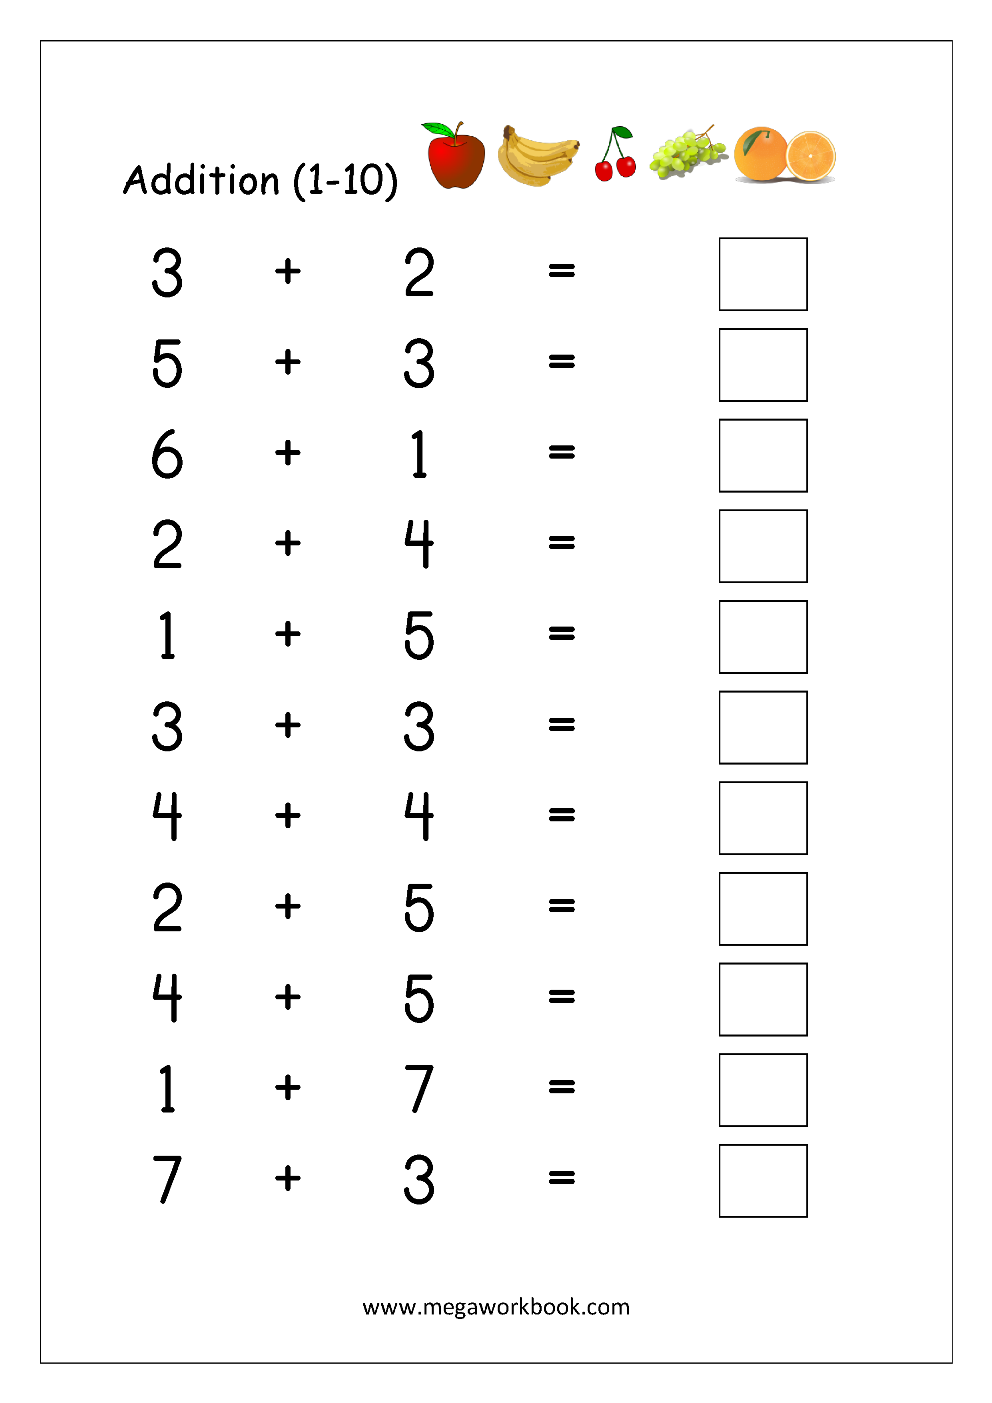 free math worksheets number addition megaworkbook